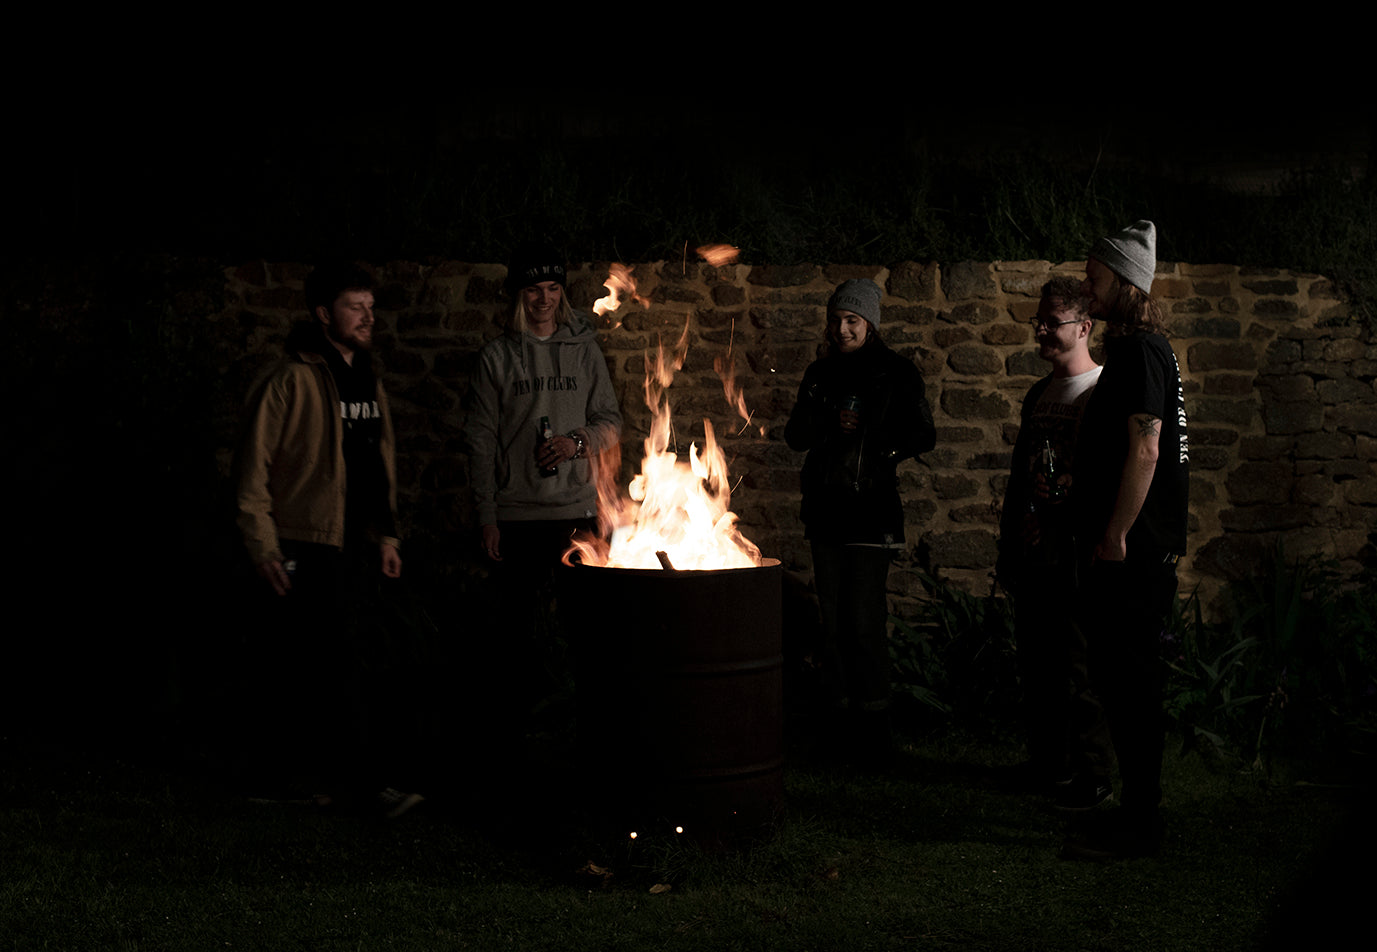 Group of young people in apparel from Ten of Clubs gathered around a burning brazier